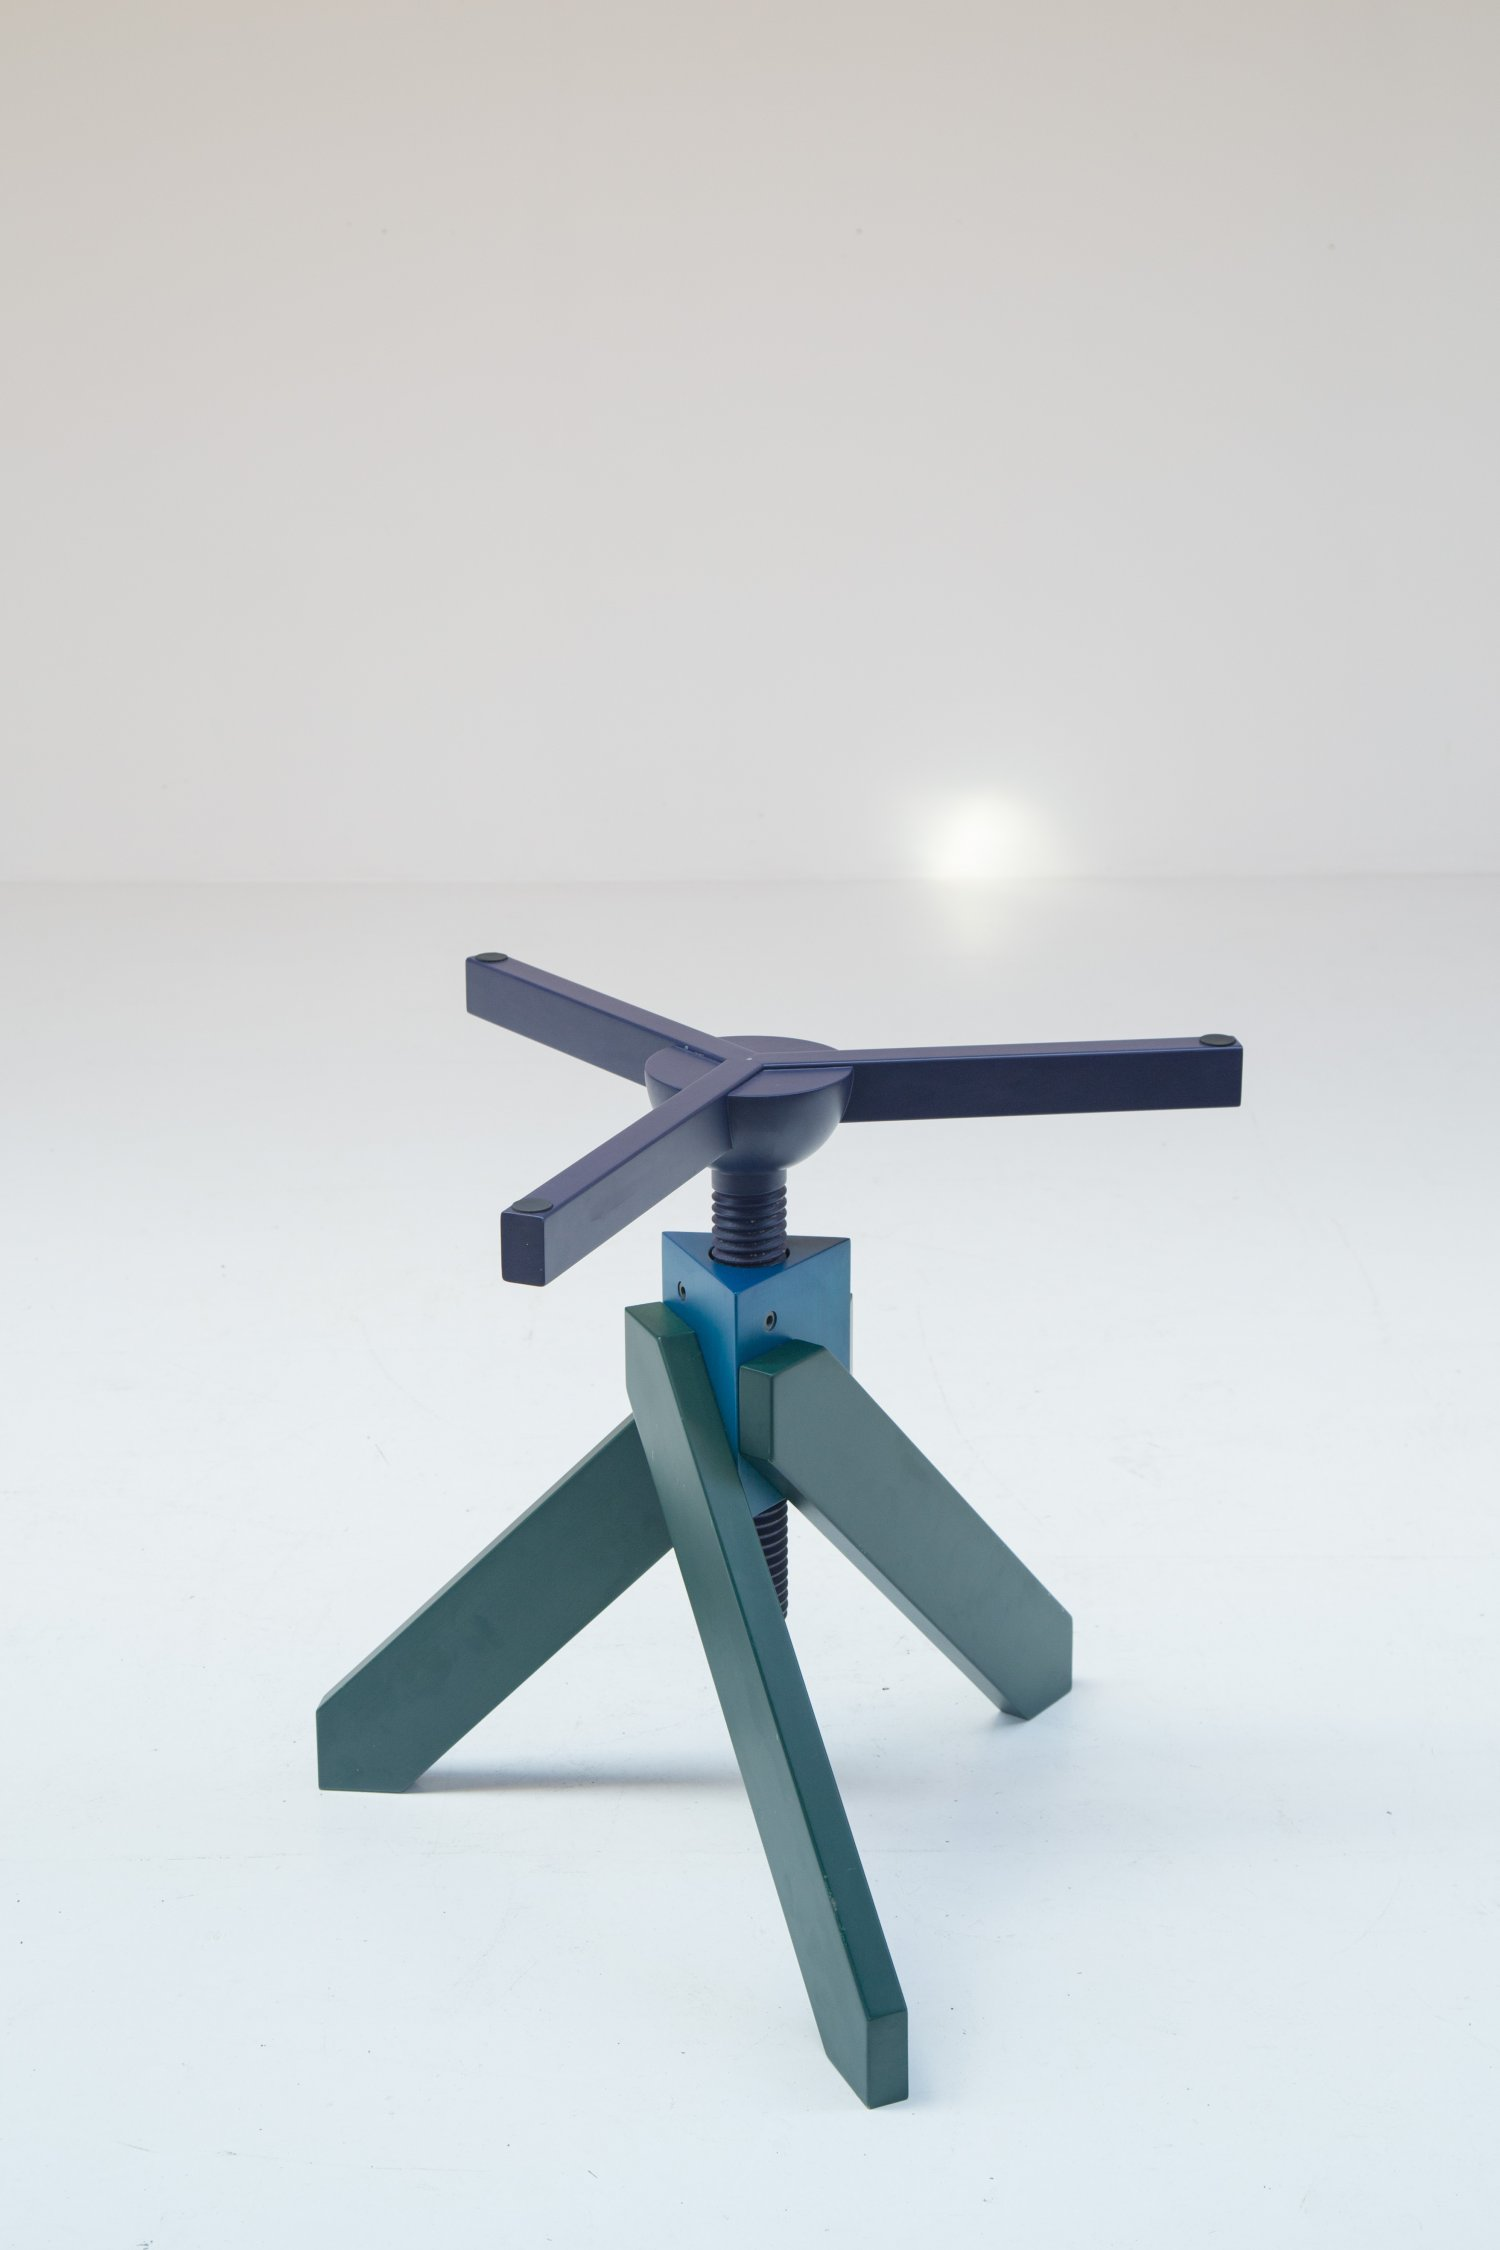 Vidun table by Vico Magistretti